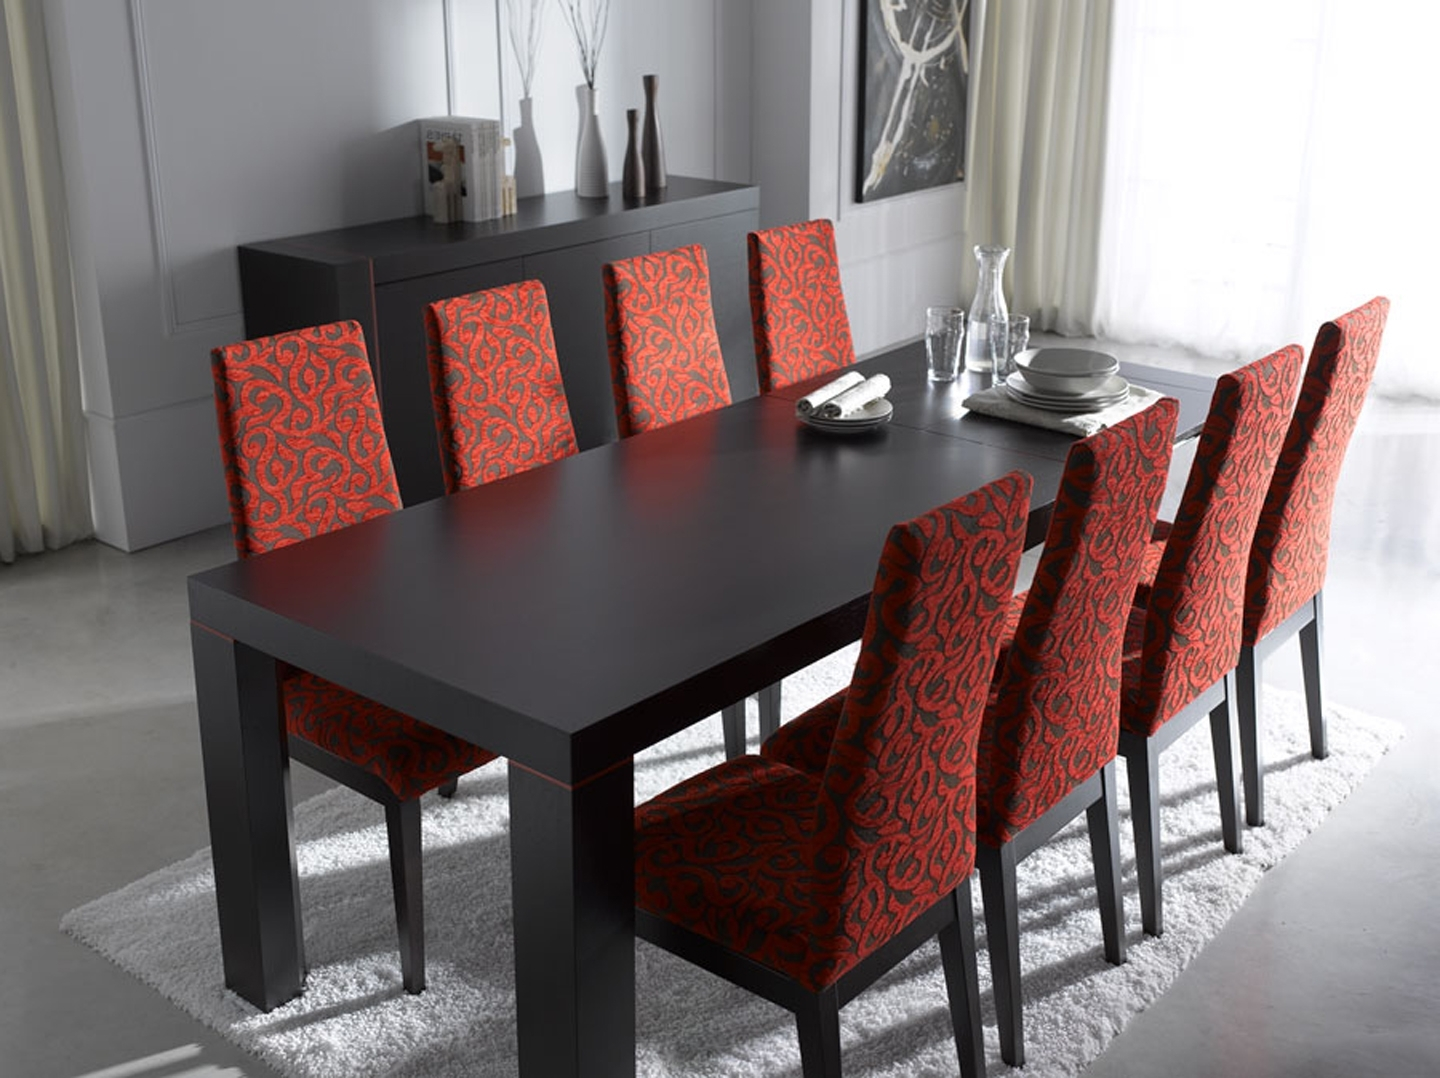 Fashionable Modern Dining Table And Chairs Intended For Dining Room : Modern Dining Tables Northern Ireland Room Sets (View 9 of 25)